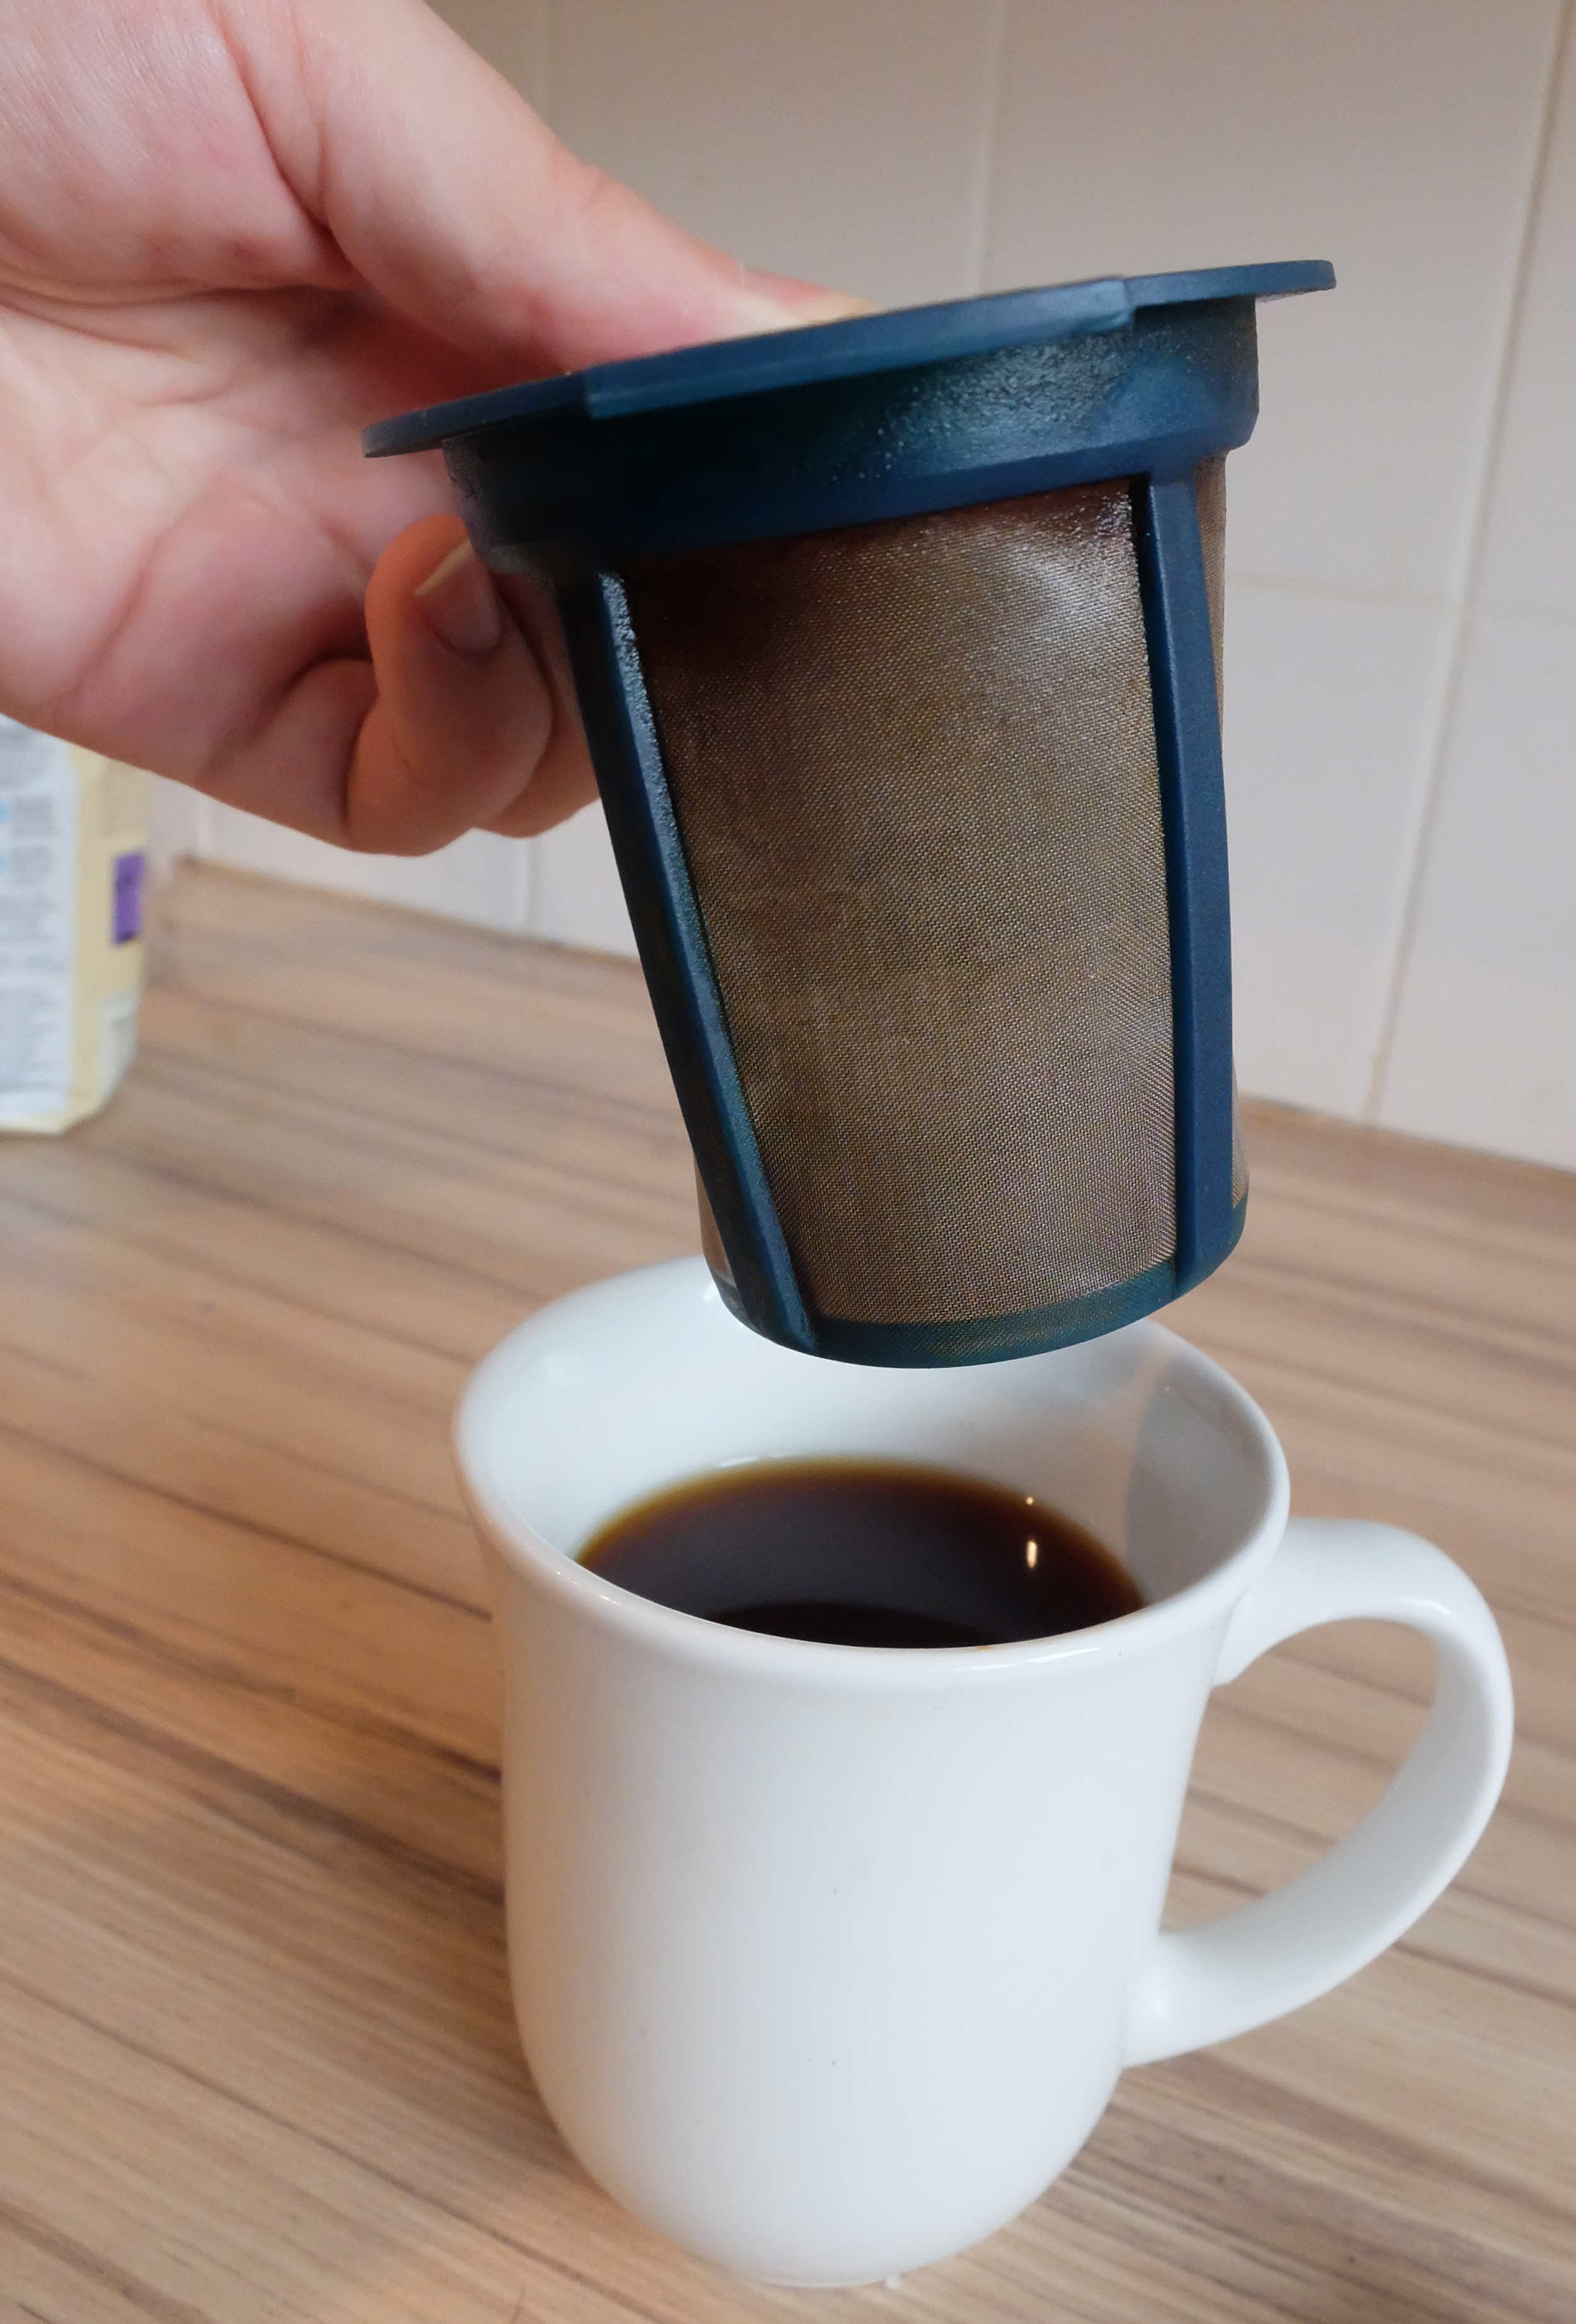 7 - Slowly take the brew basket out of the mug, and let it drip over the mug for a few seconds.